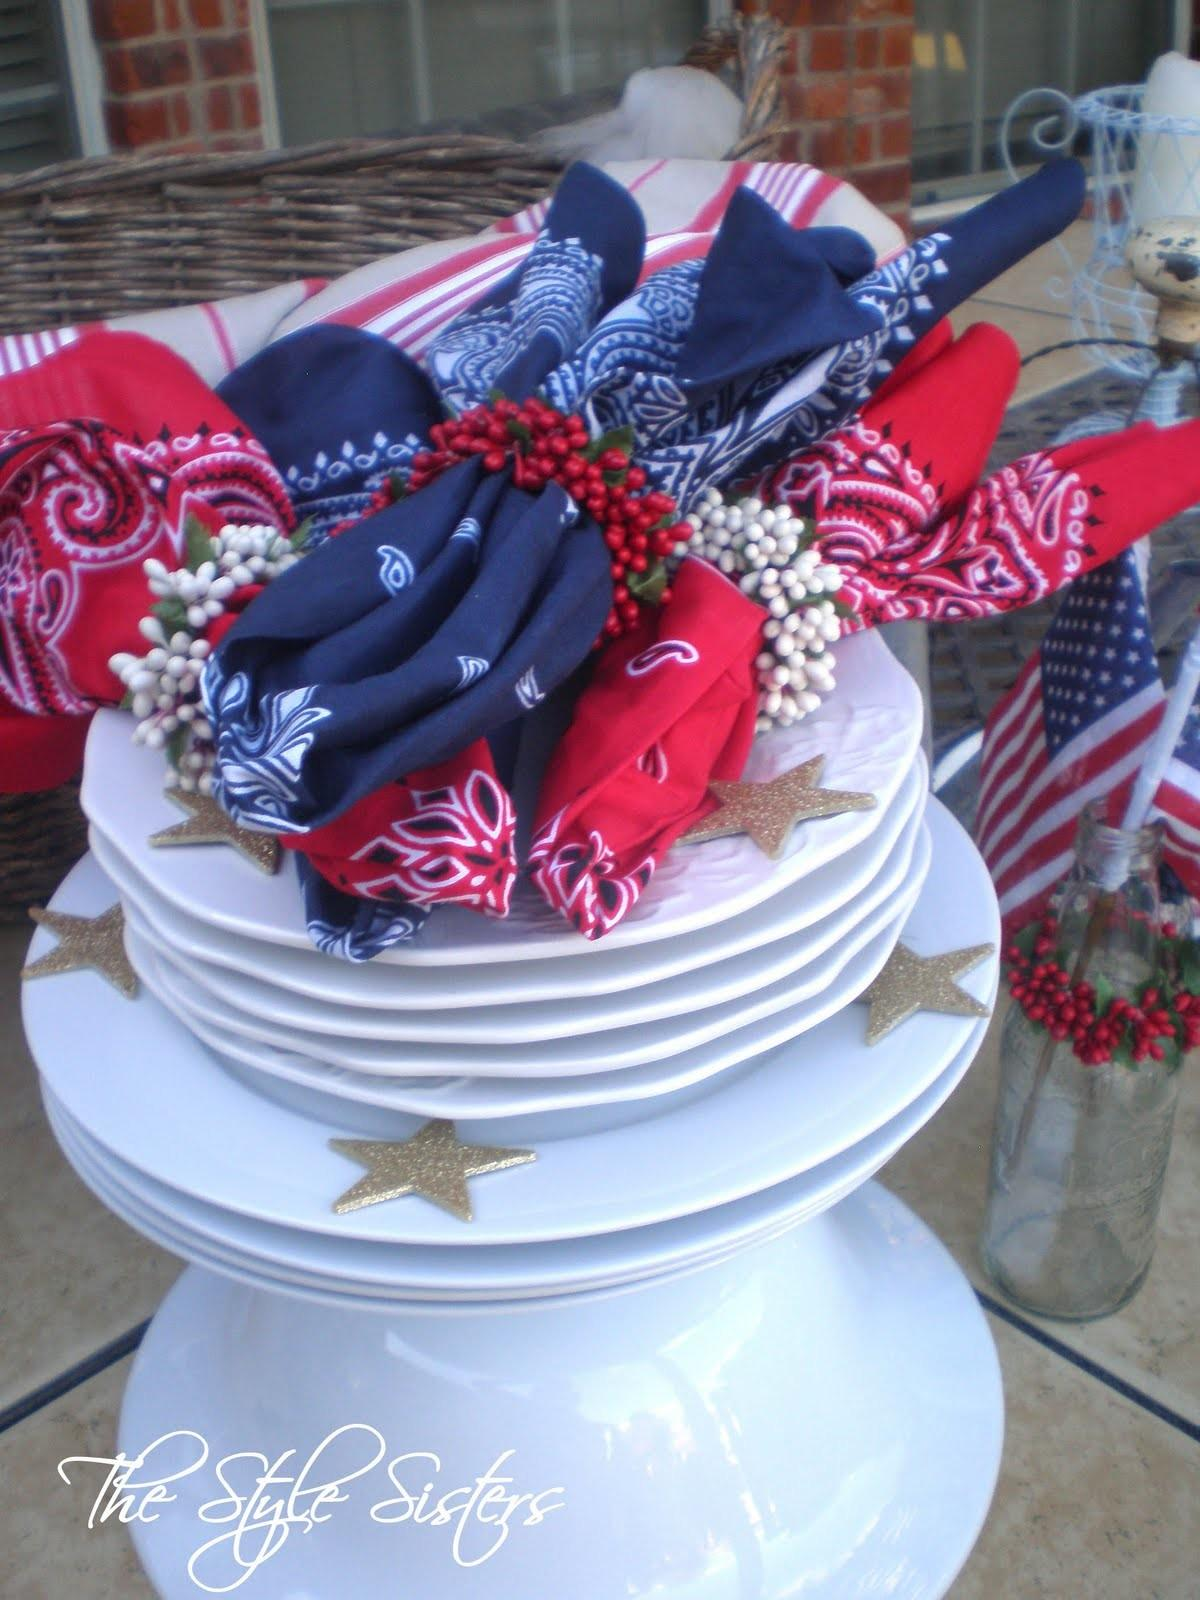 4th July Decorations Picnic Basket Style Sisters